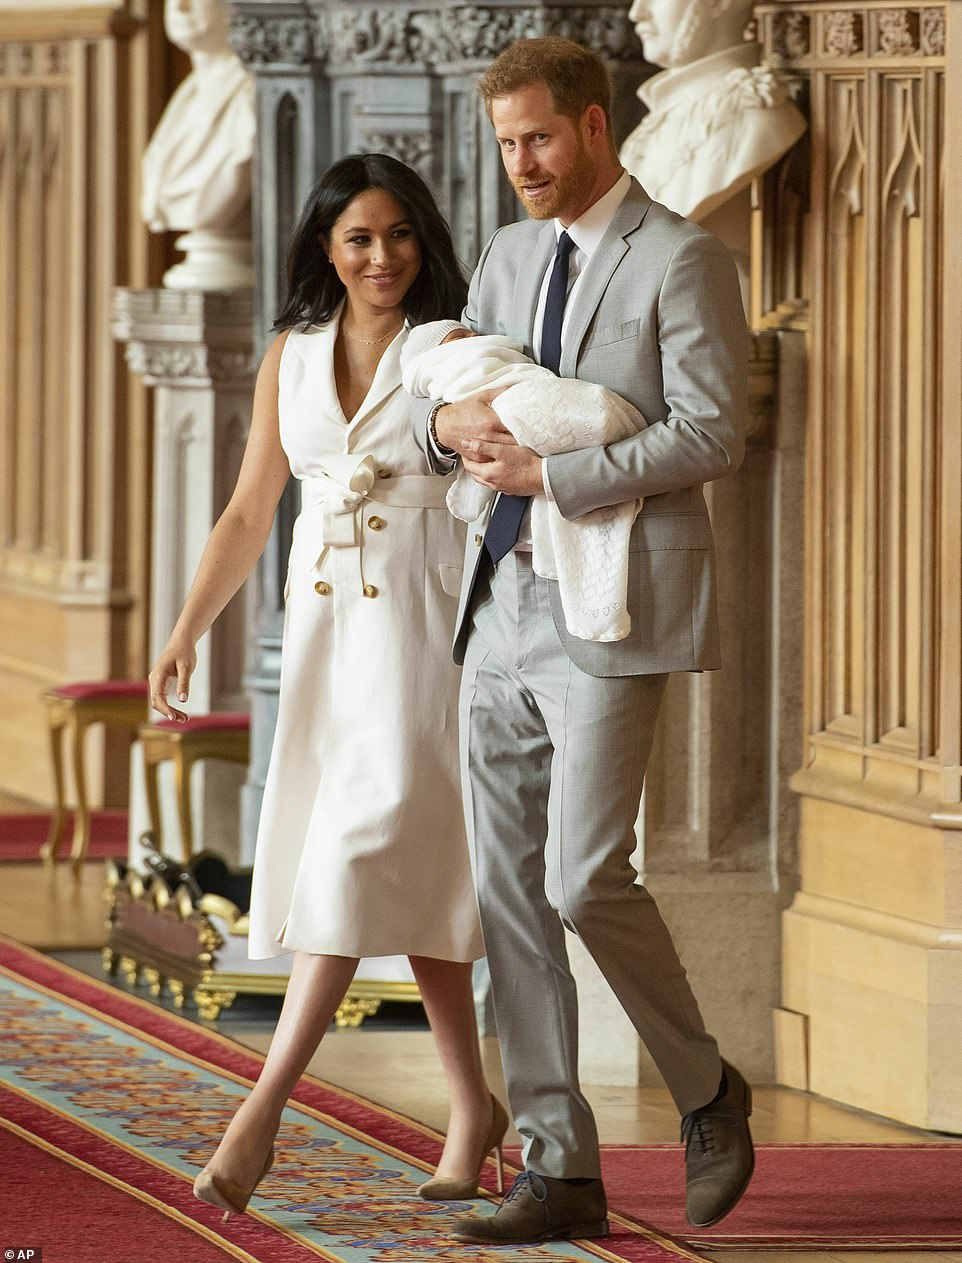 FIRST PHOTOS OF MEGHAN, HARRY AND BABY SUSSEX